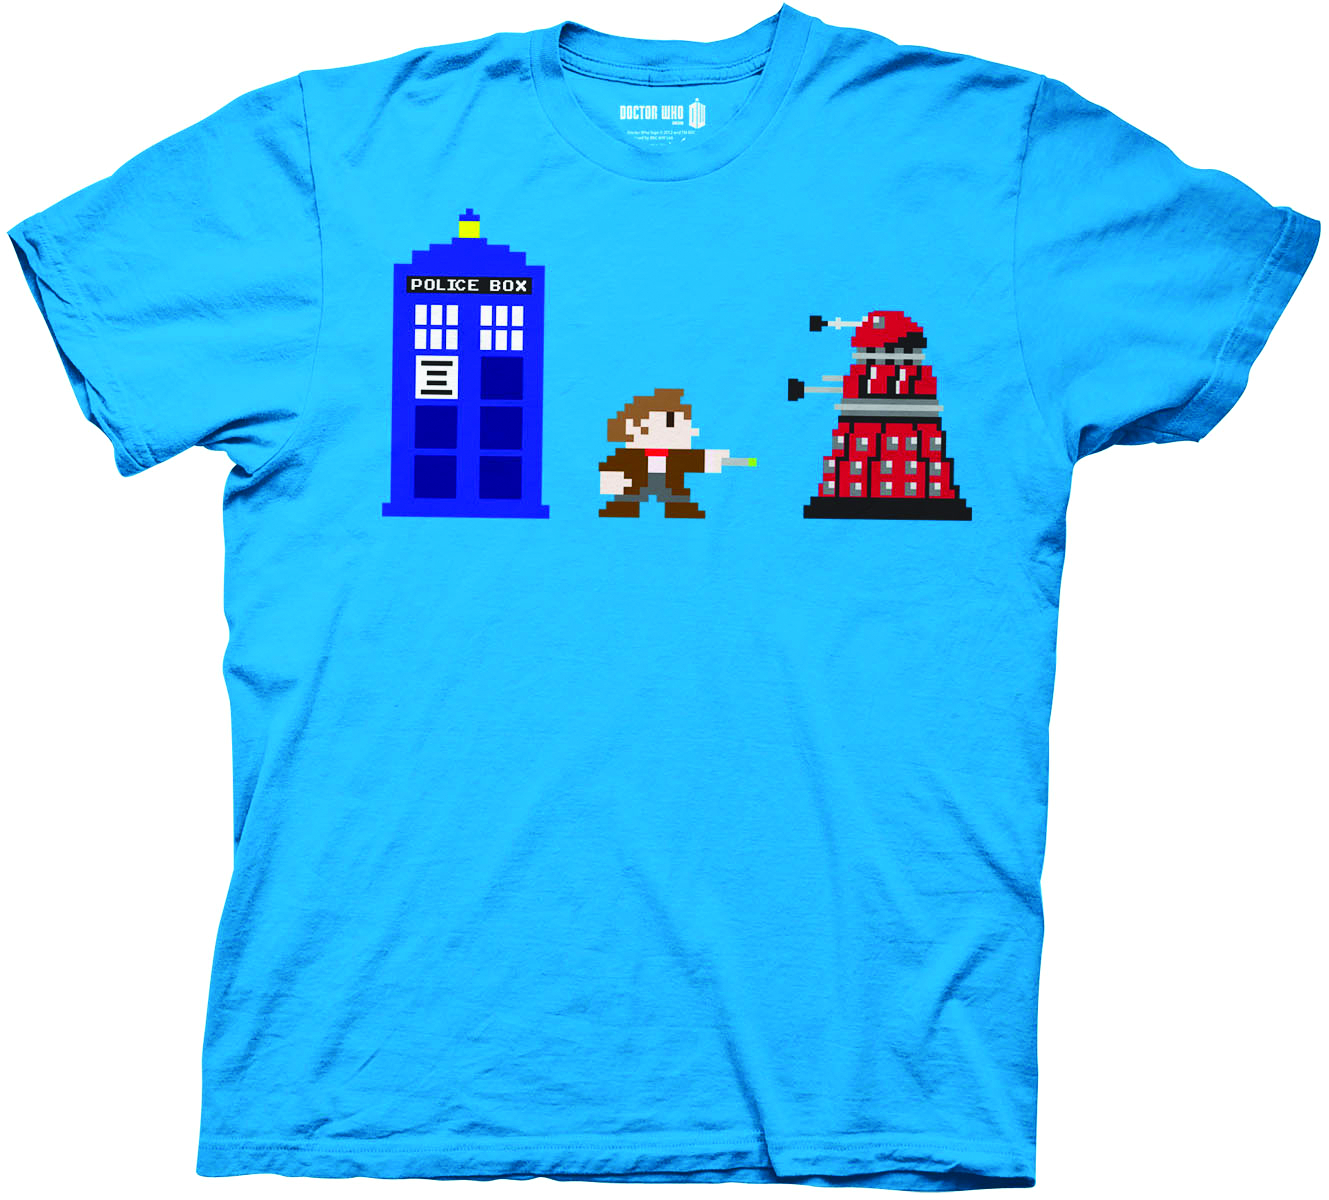 DOCTOR WHO 8 BIT PX TURQUOISE T/S LG